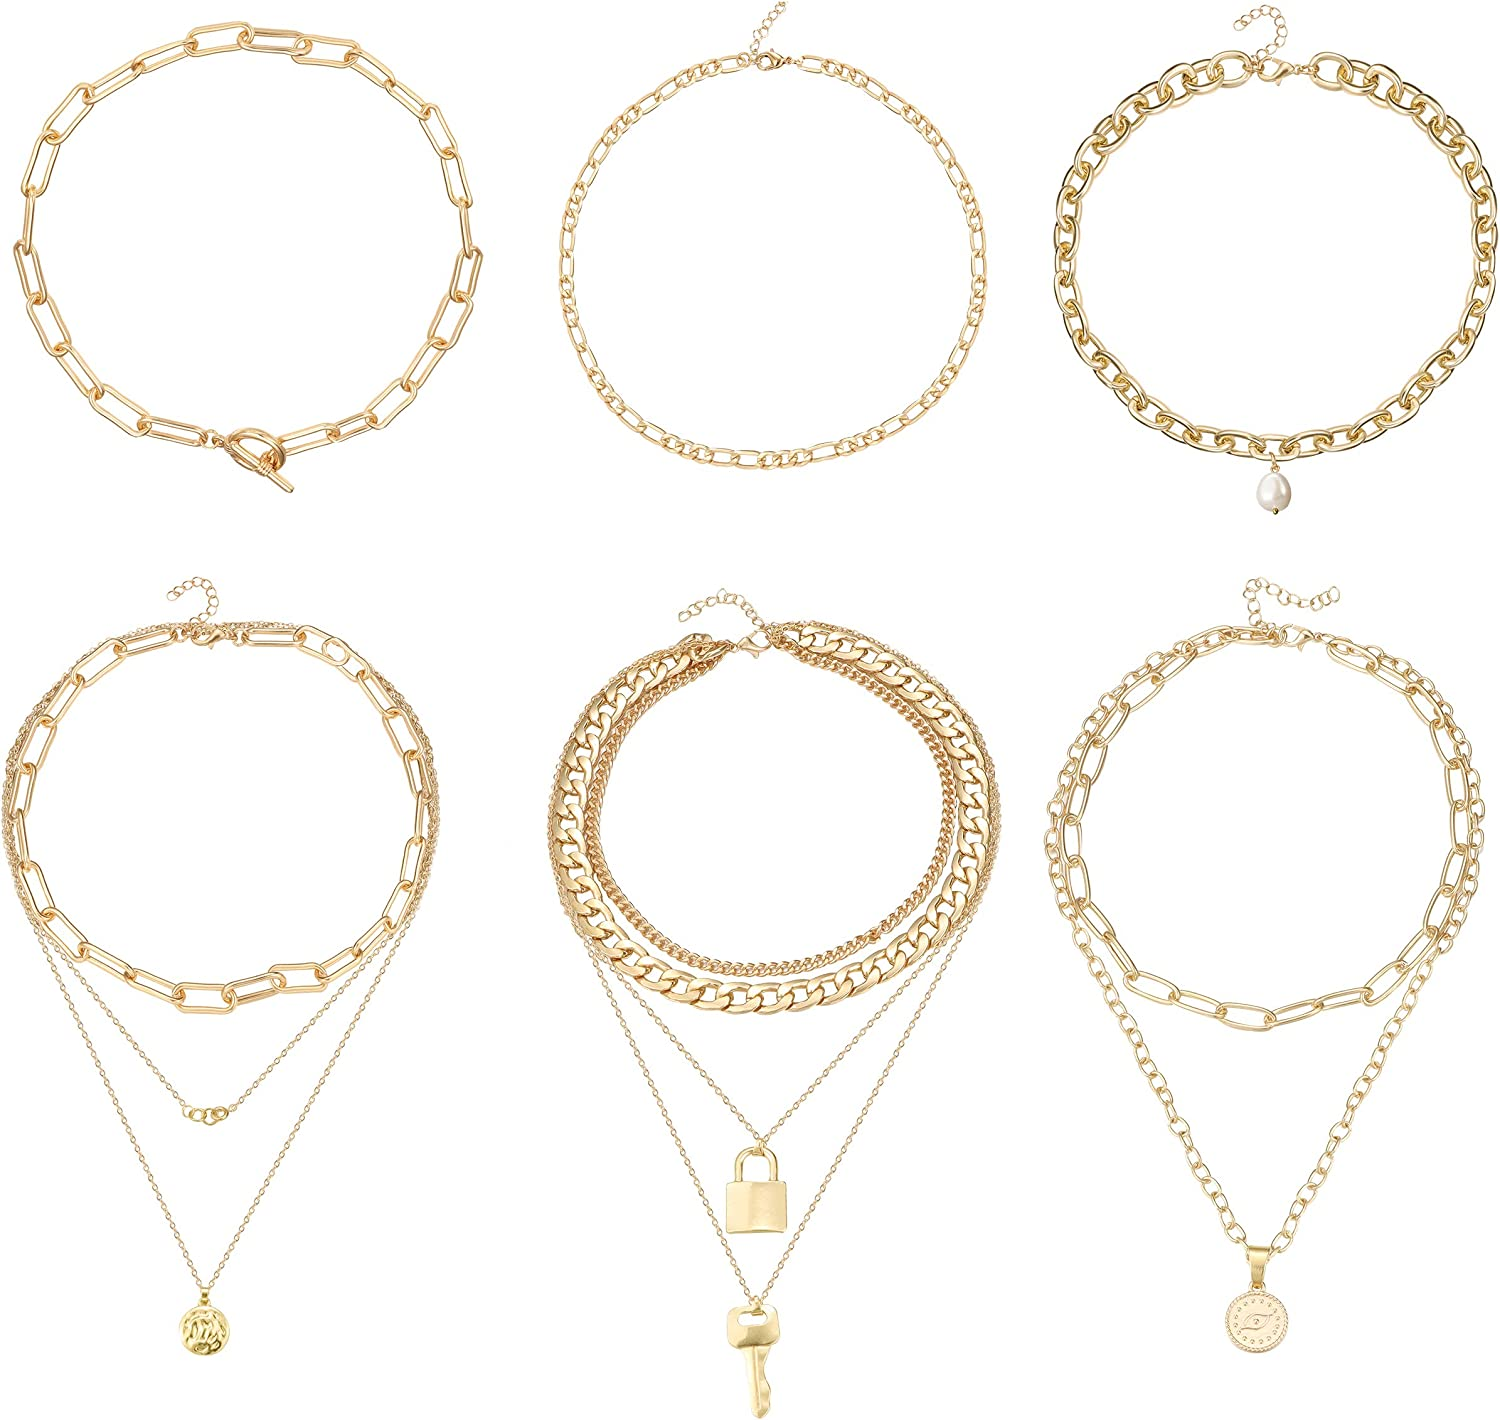 FIBO STEEL 14k Gold Plated Layered Chain Necklace for Women Adjustable Choker Y Necklace Pendant with Evil Eye Lock Key Disc Chunky Link Chain Set (6Pcs)